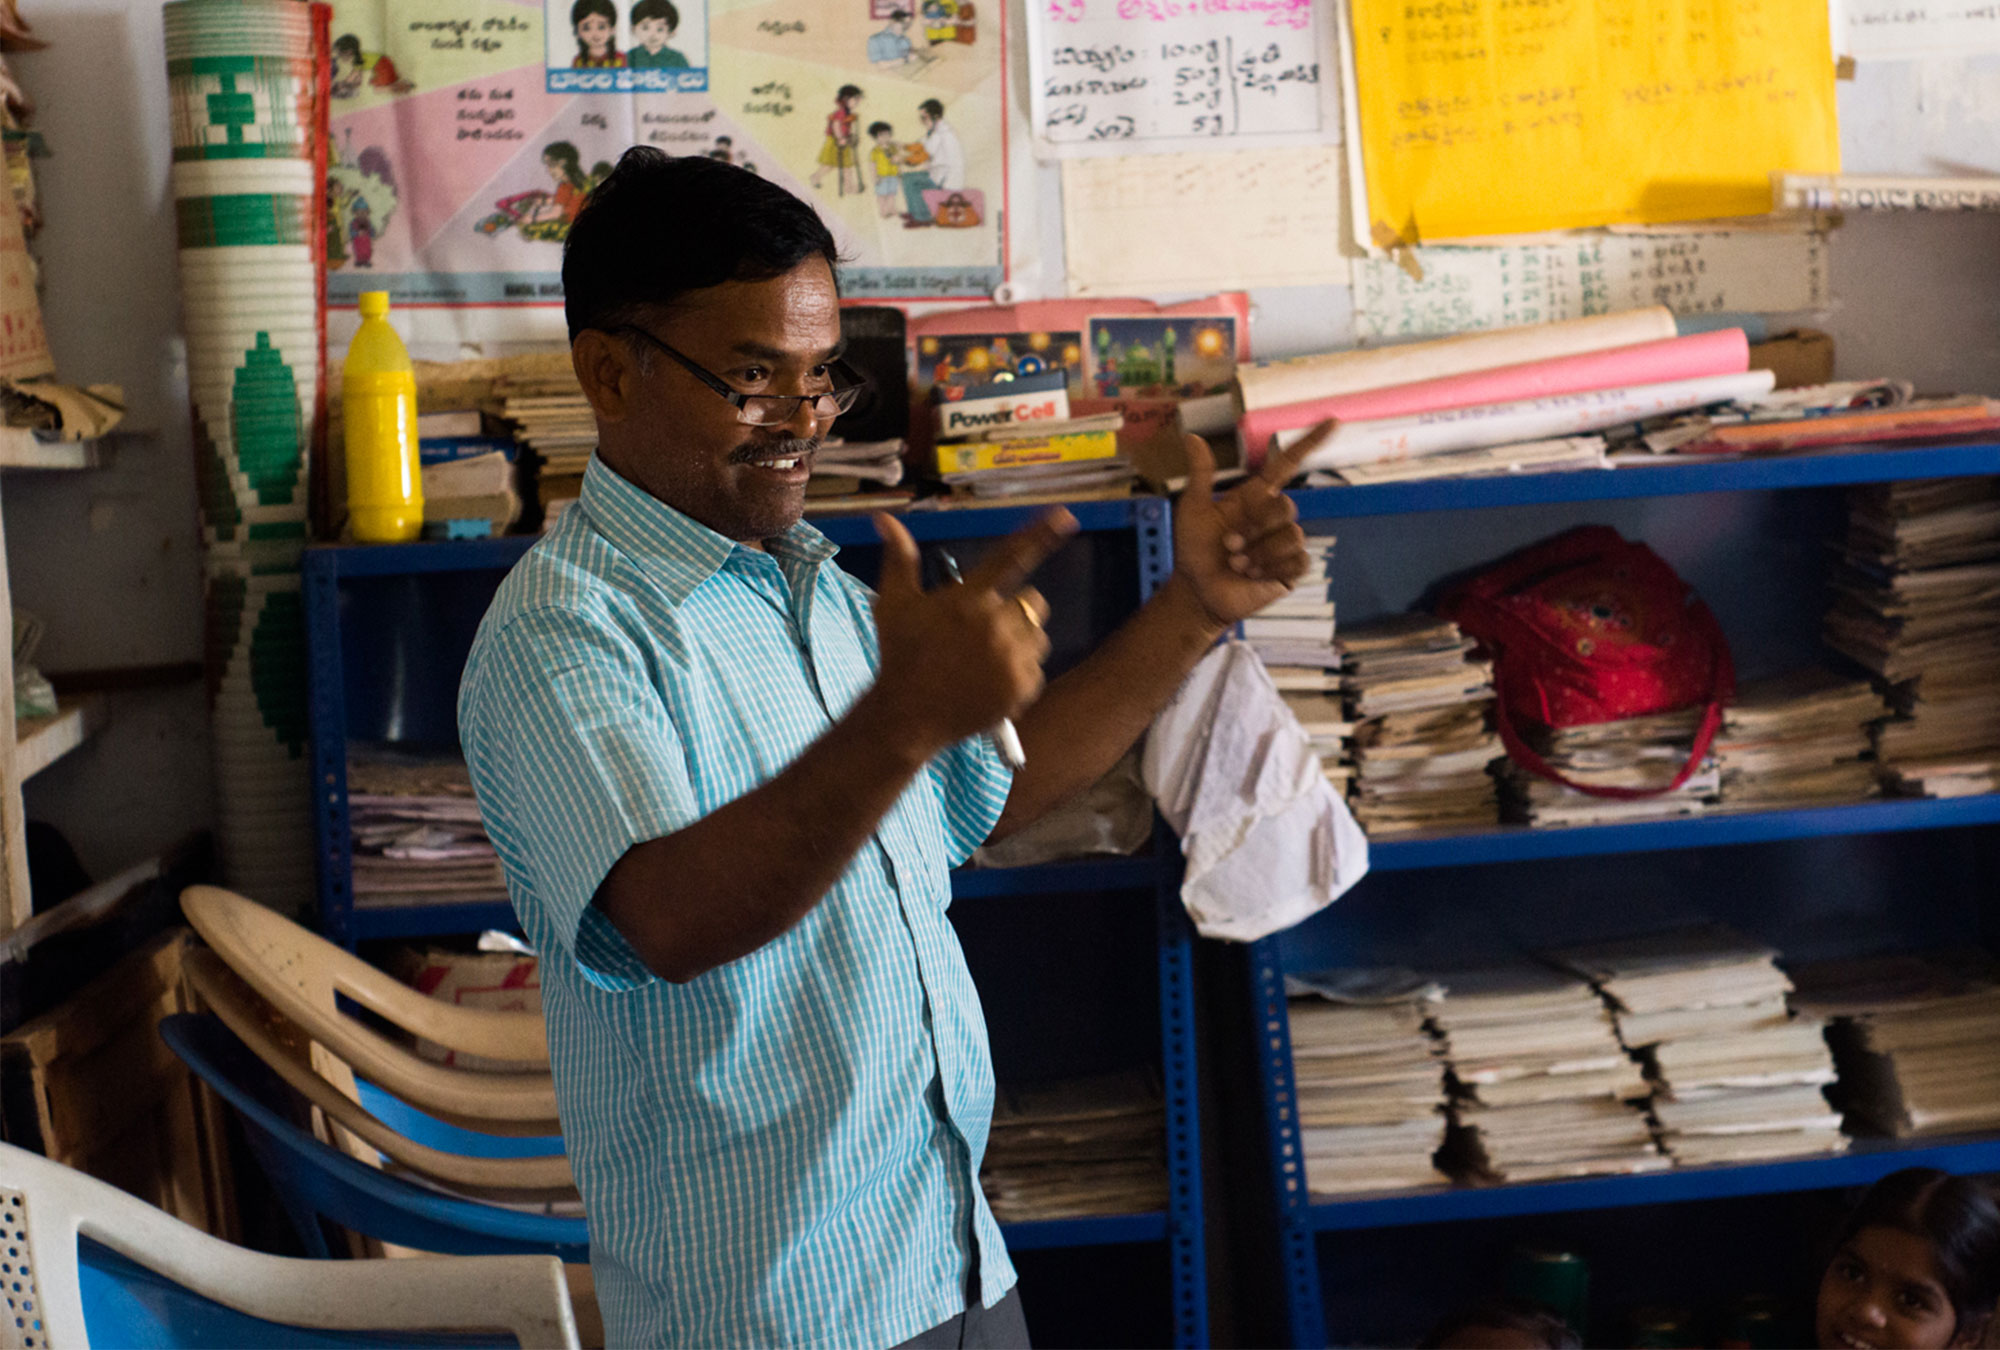 A teacher gives a lively lecture to students